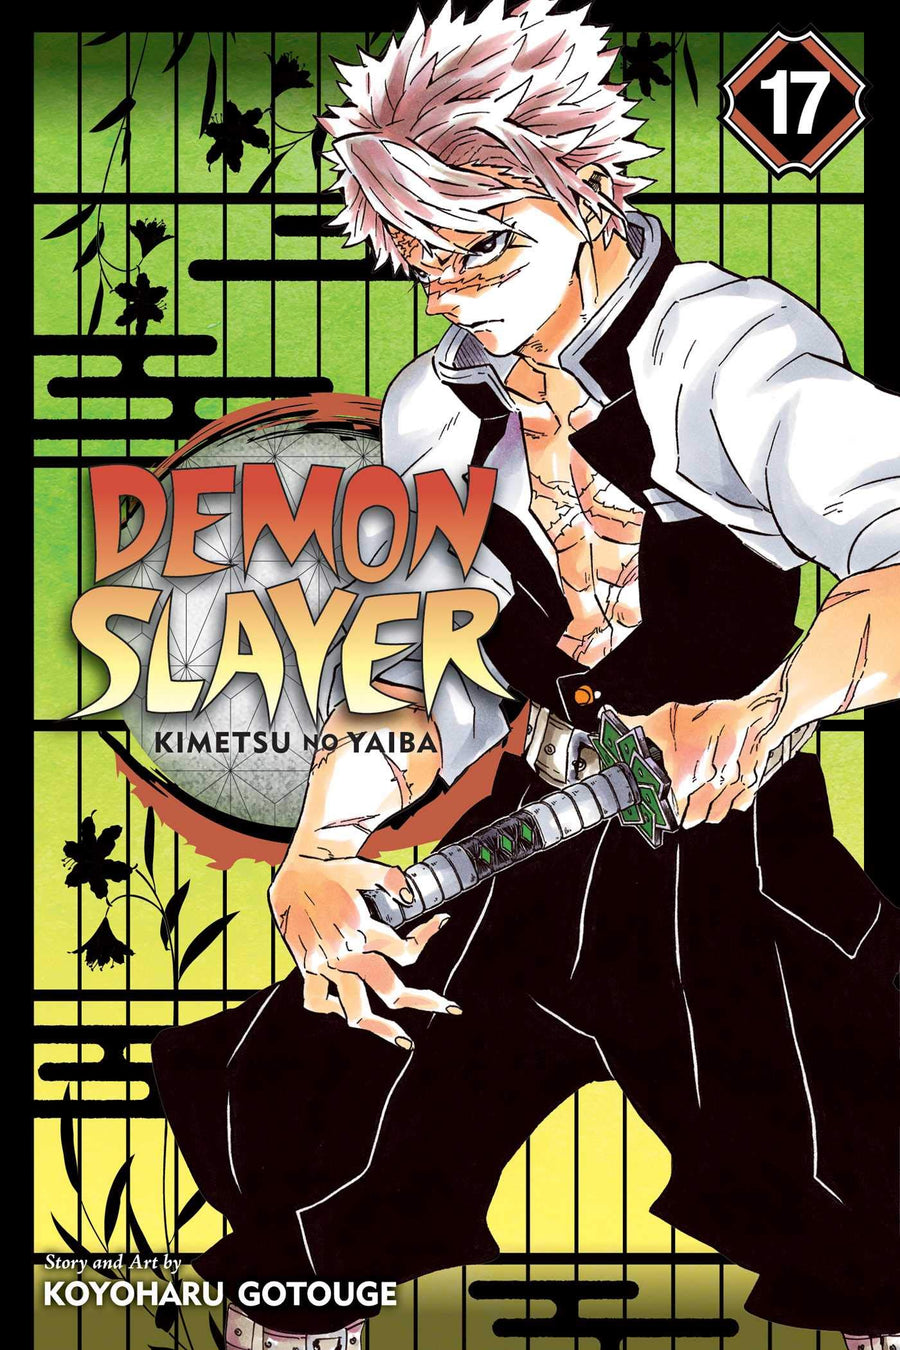 Demon Slayer Kimetsu No Yaiba Volume 17